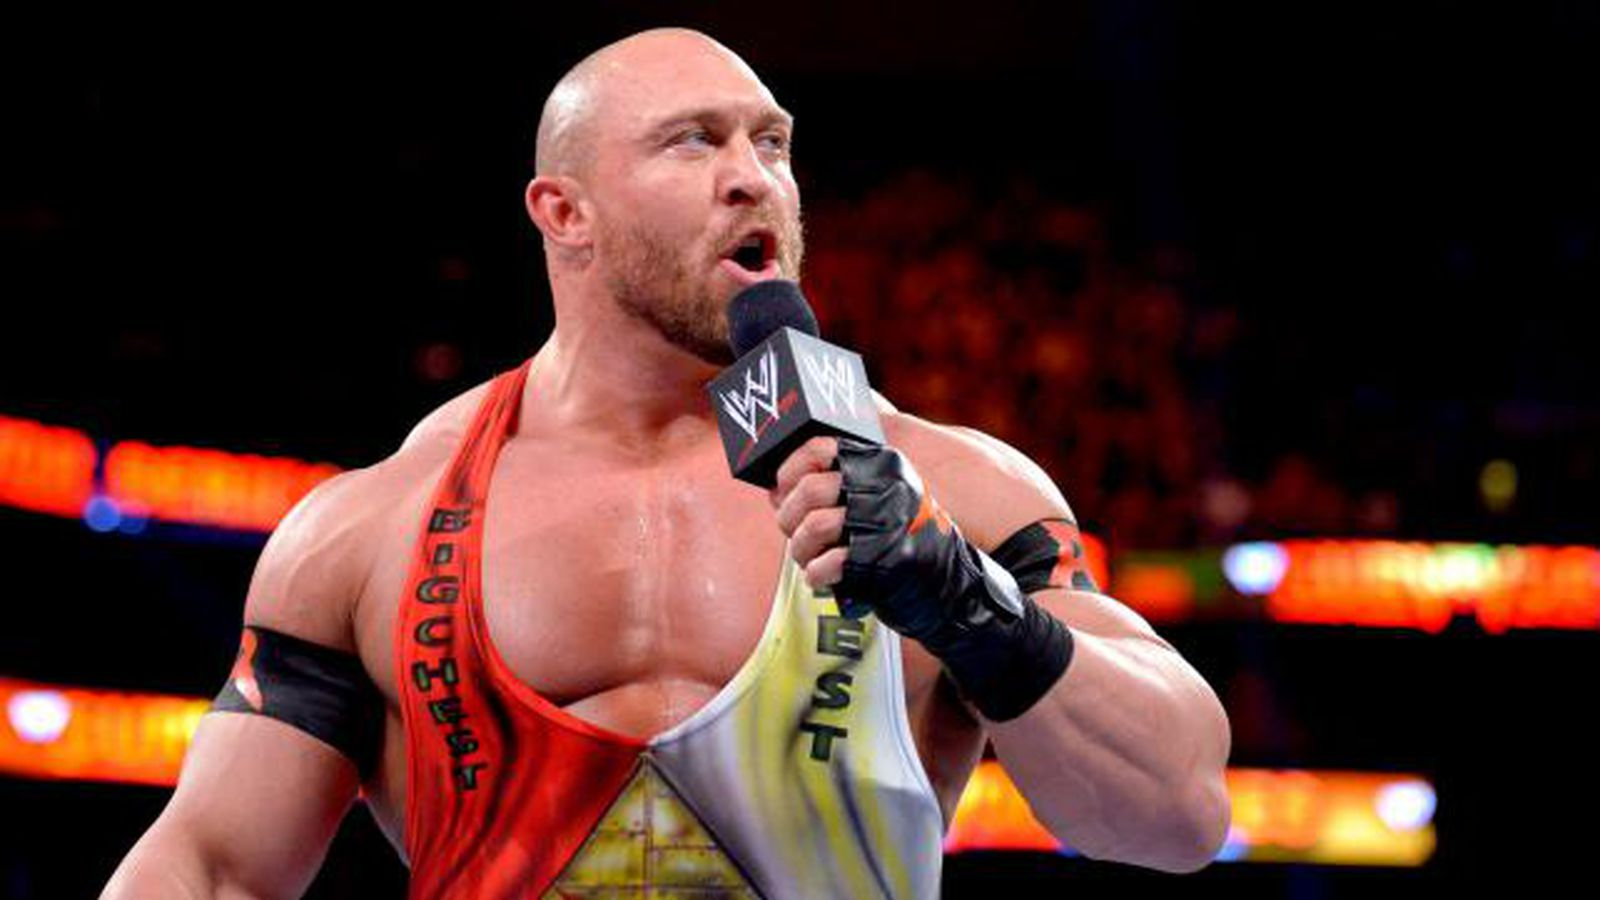 Video: Ryback explains his injuries before surgery